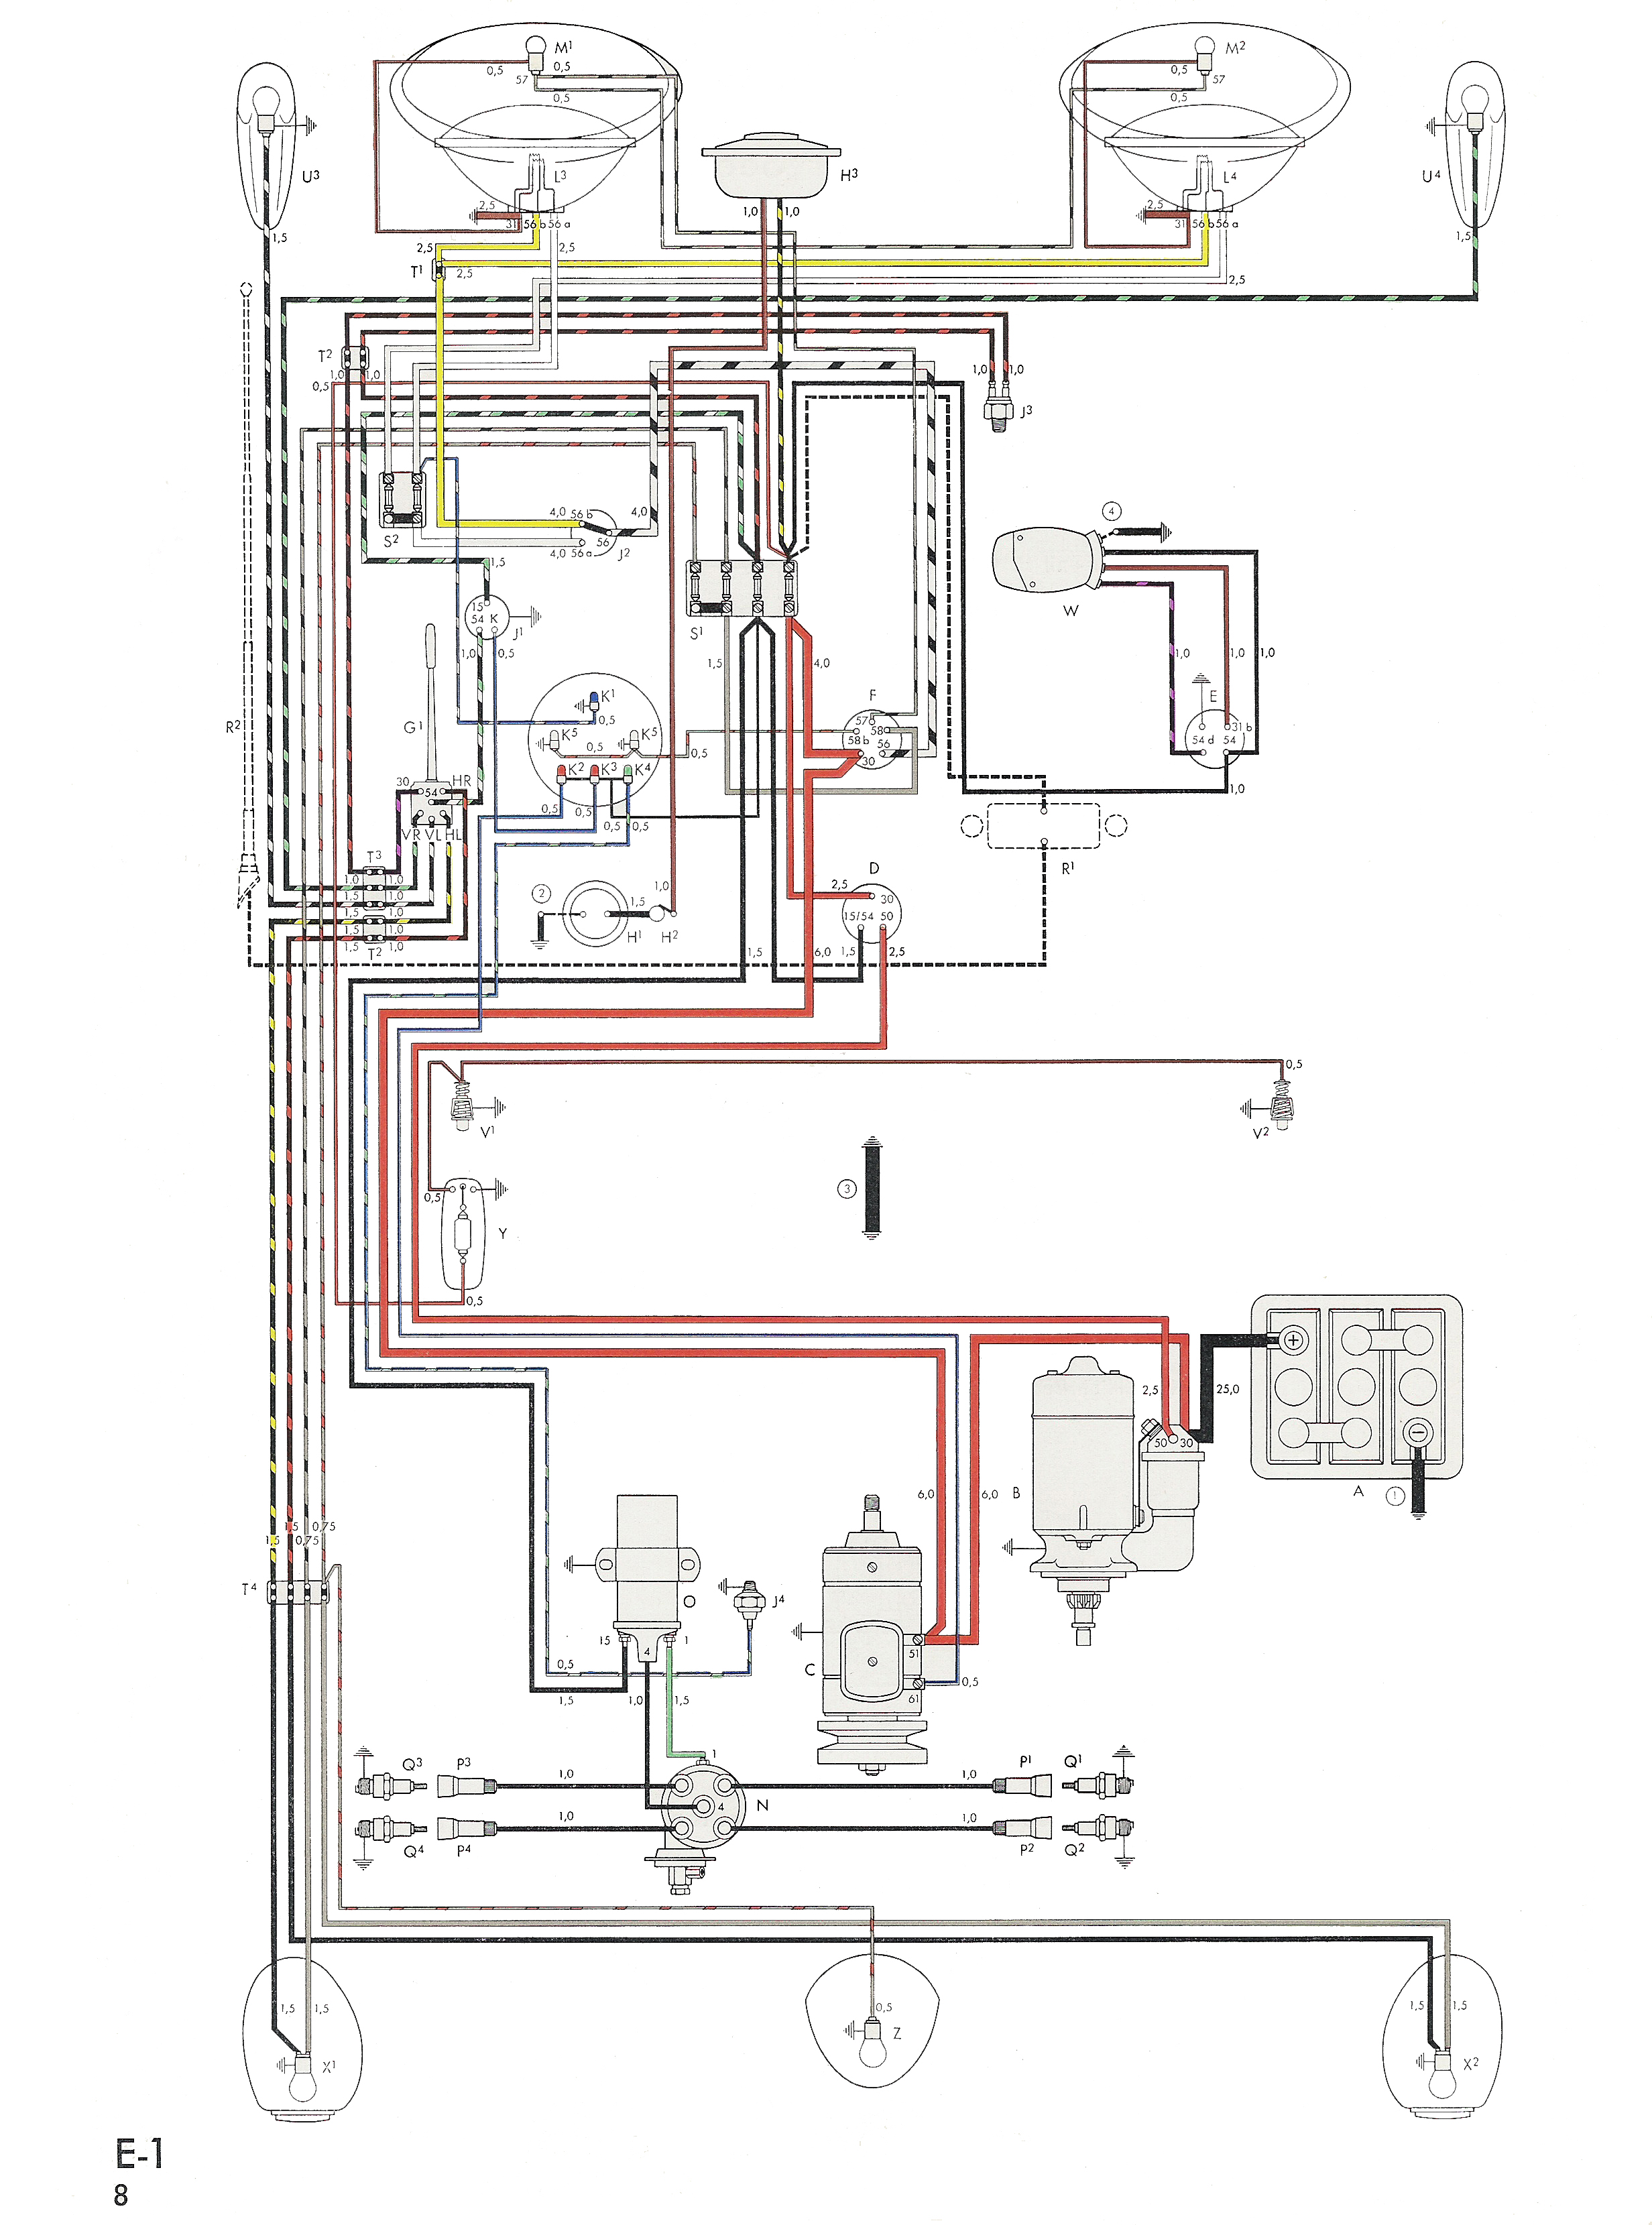 thesamba com type 1 wiring diagrams rh thesamba com general electric wiring diagram general electric wiring diagram